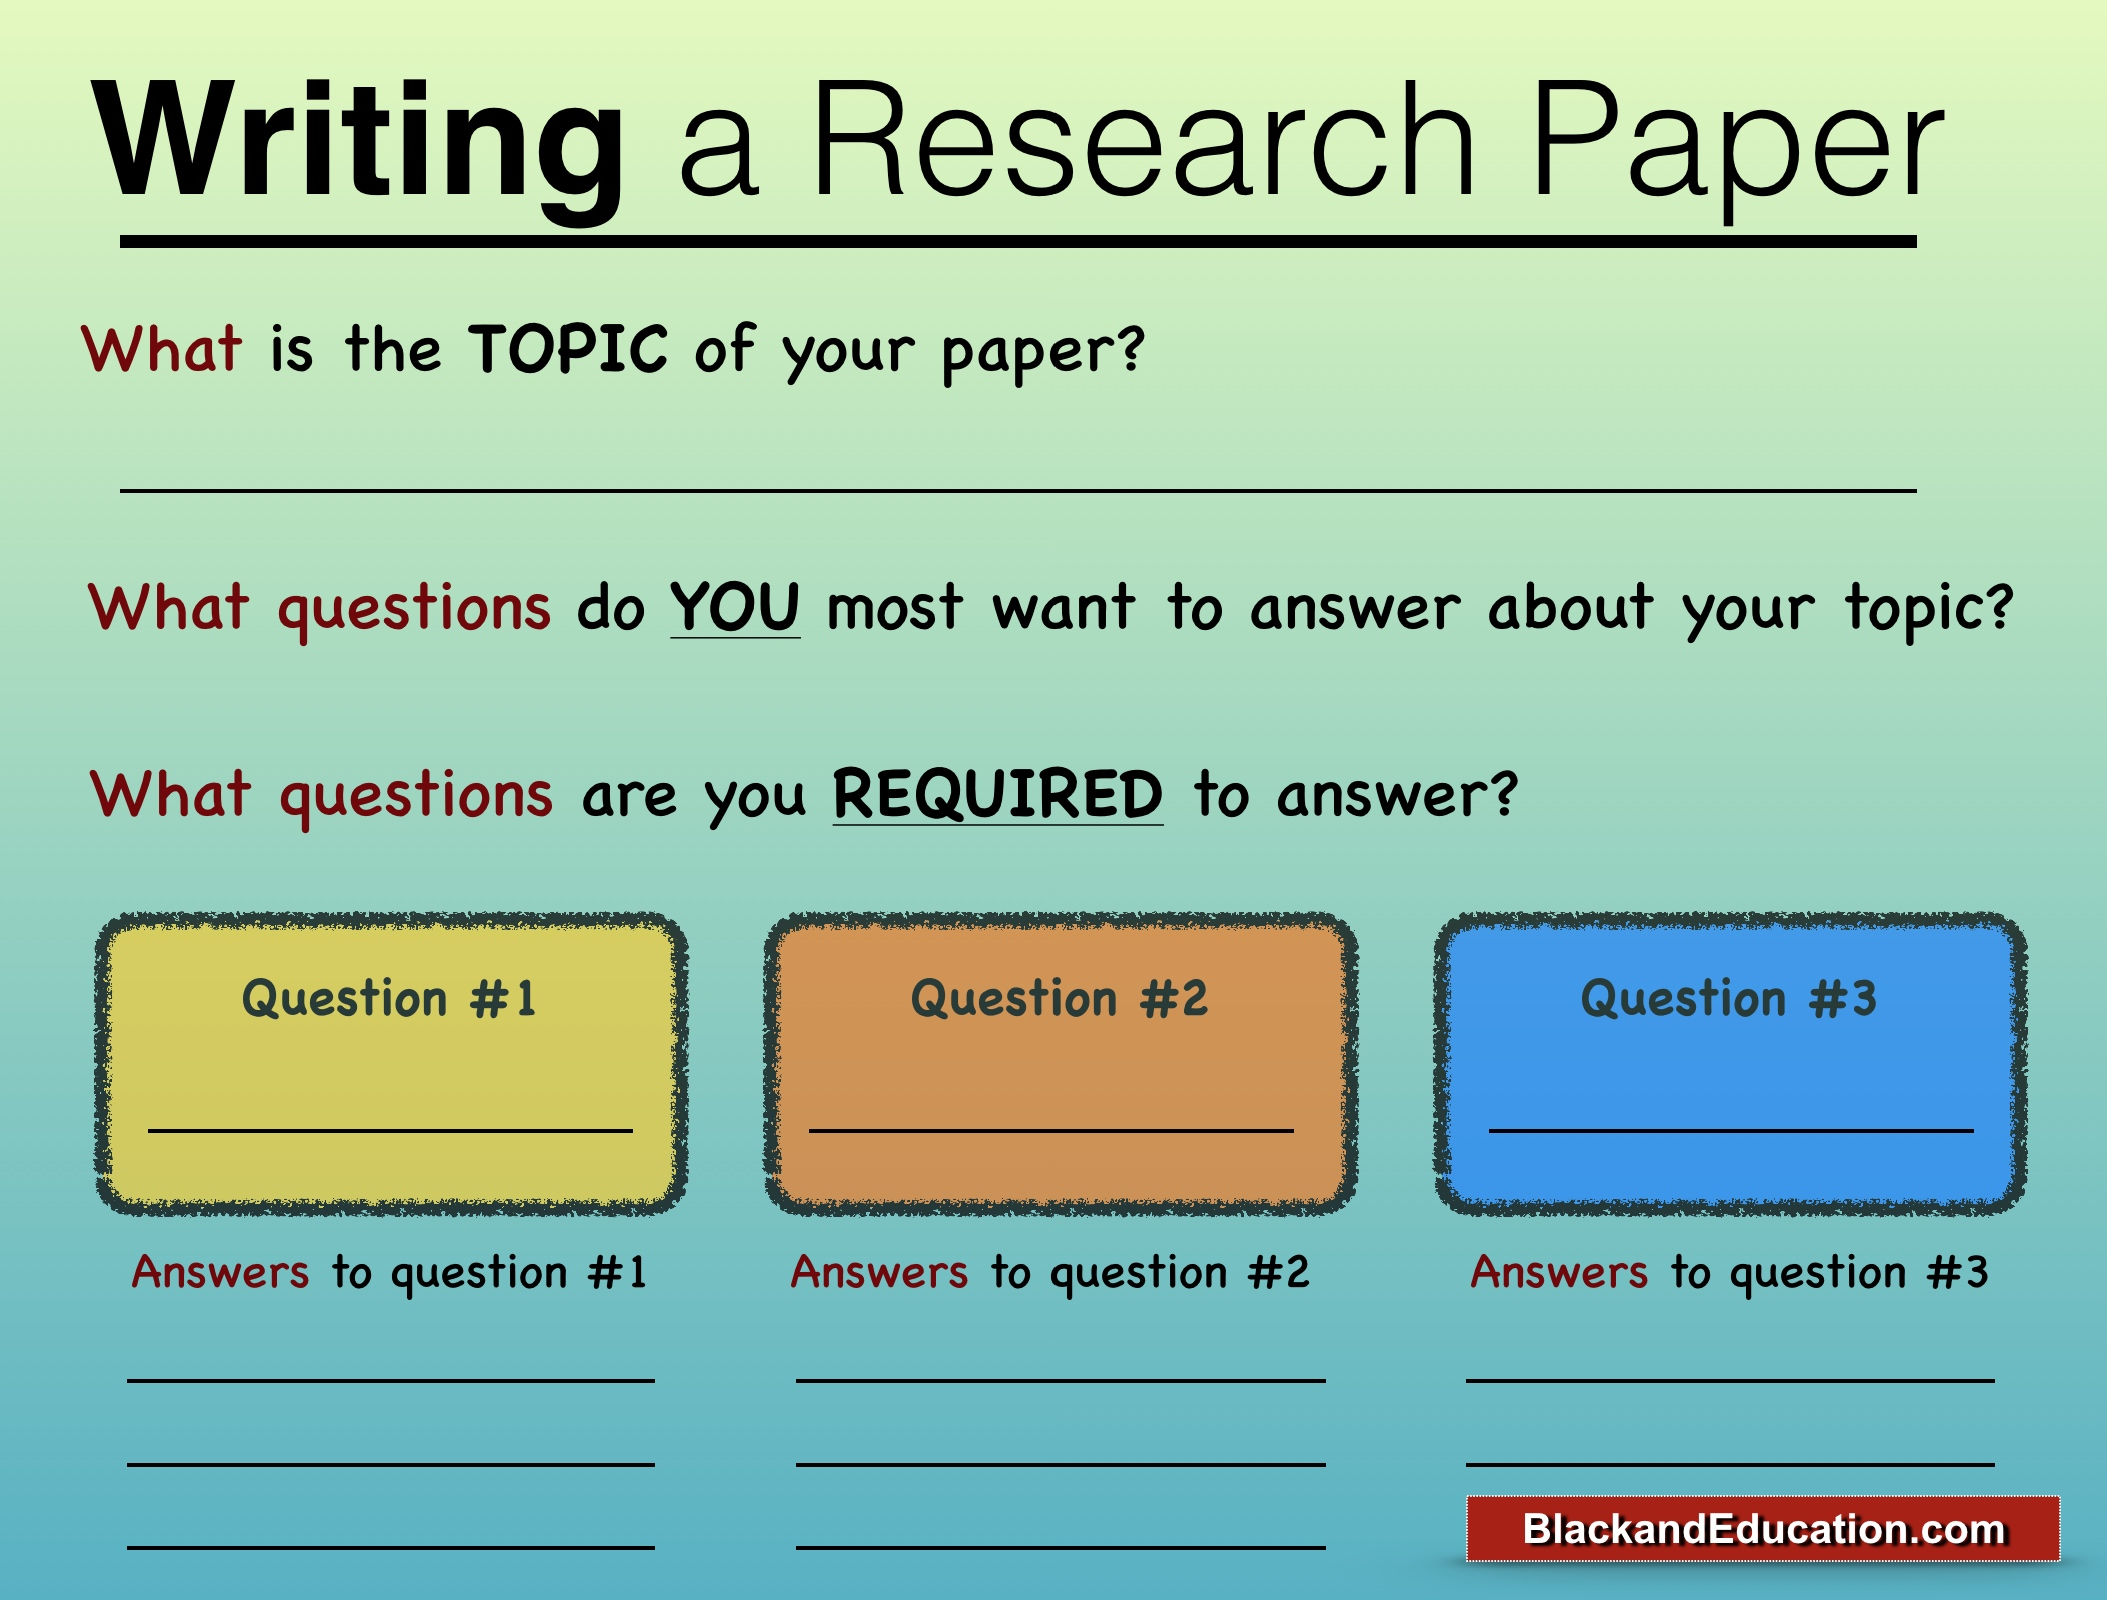 Red and Black Ink, LLC - Writing a Research Paper.